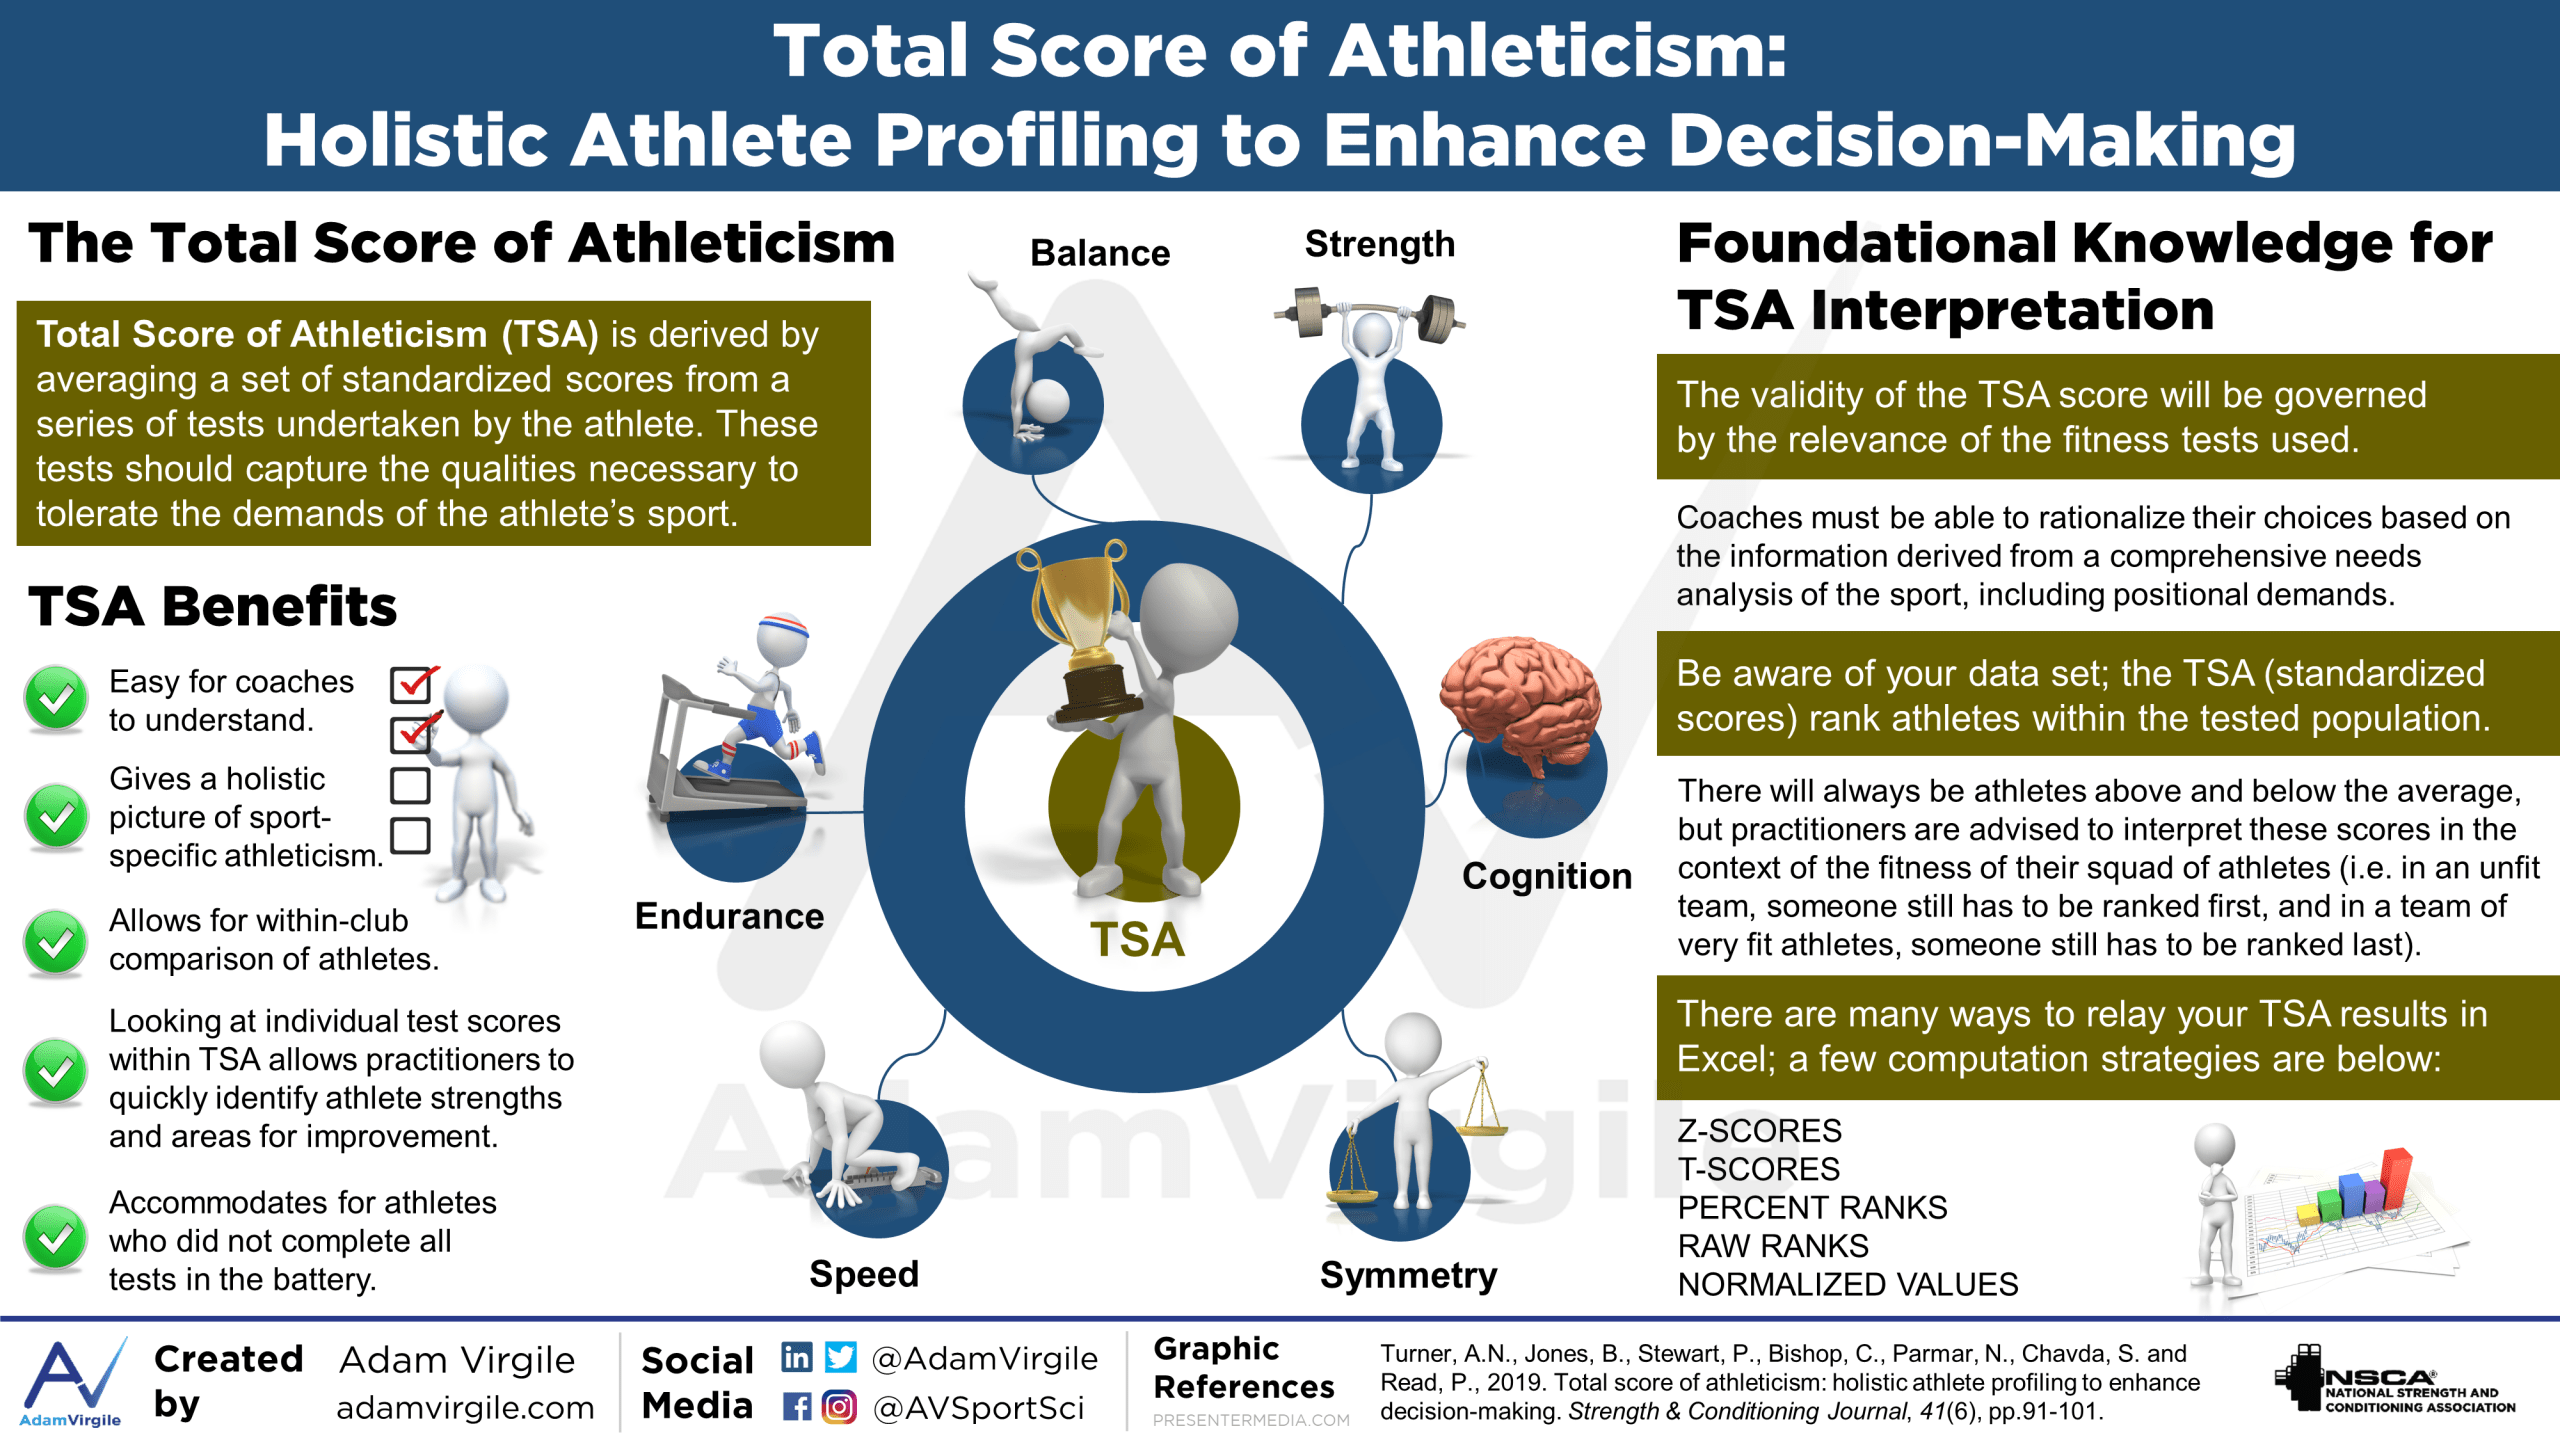 Total Score of Athleticism: Holistic Athlete Profiling to Enhance Decision-Making